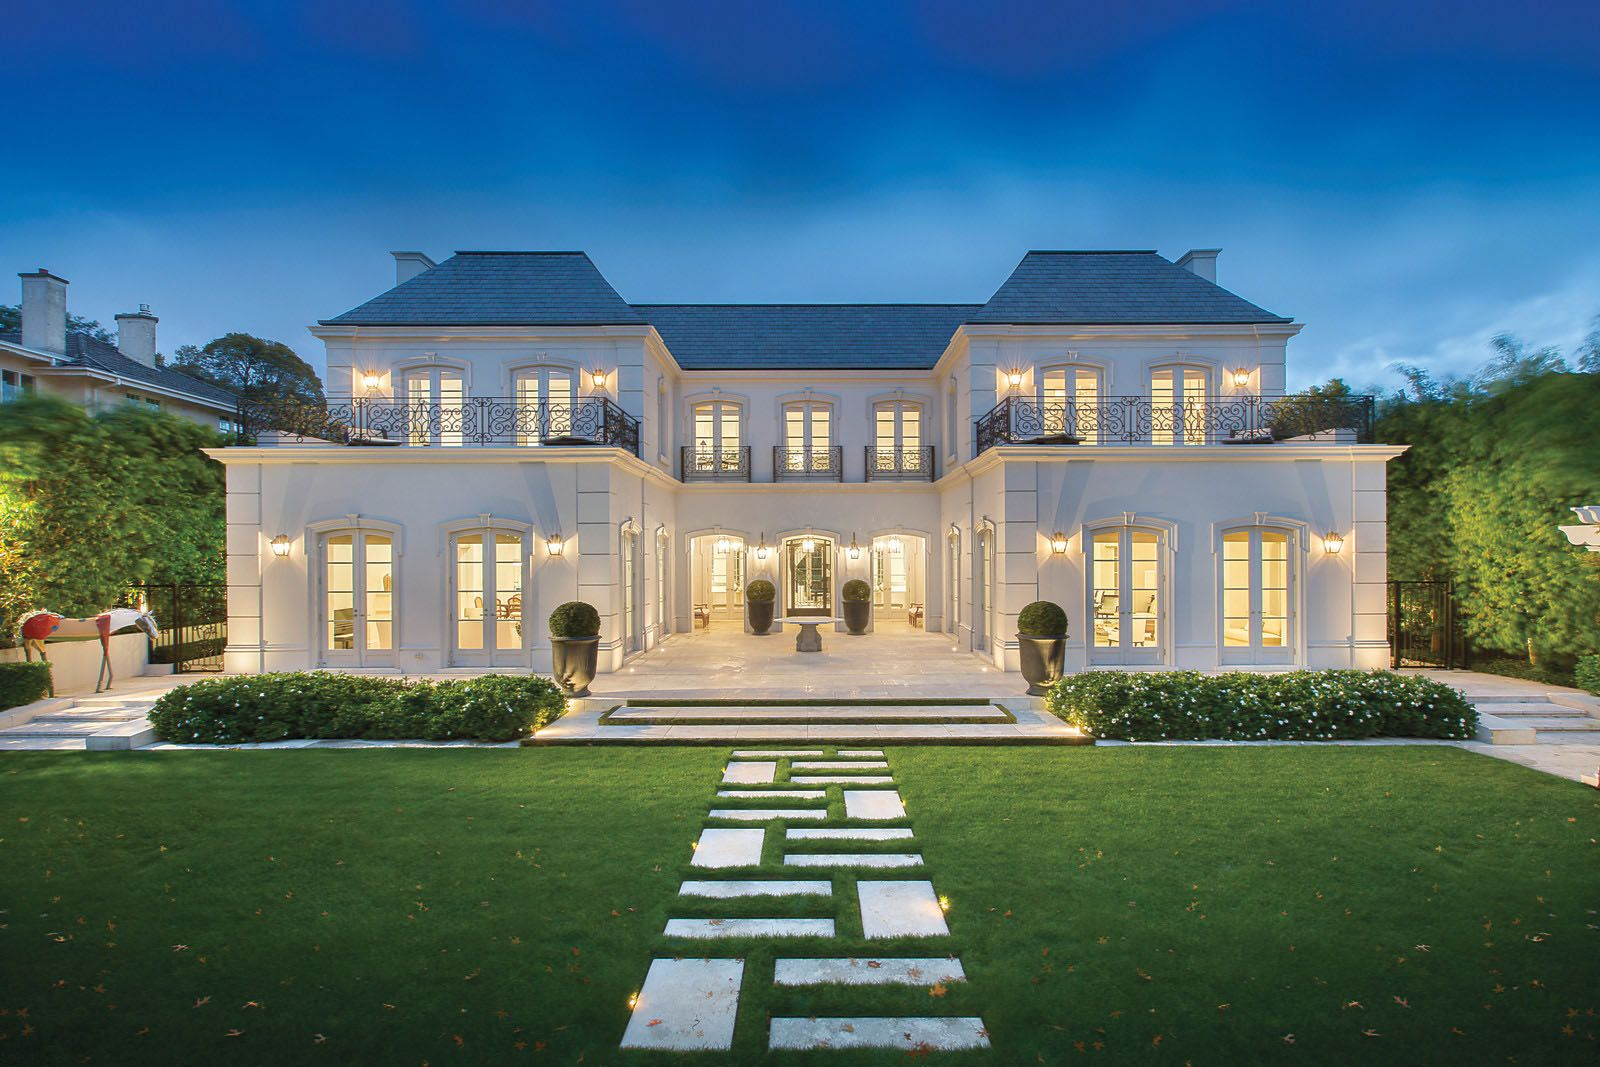 Palatial Luxury Mansion In Melbourne With Classical French Architecture Idesignarch Interior Design Architecture Interior Decorating Emagazine Luxury Homes Exterior Mansions Expensive Houses